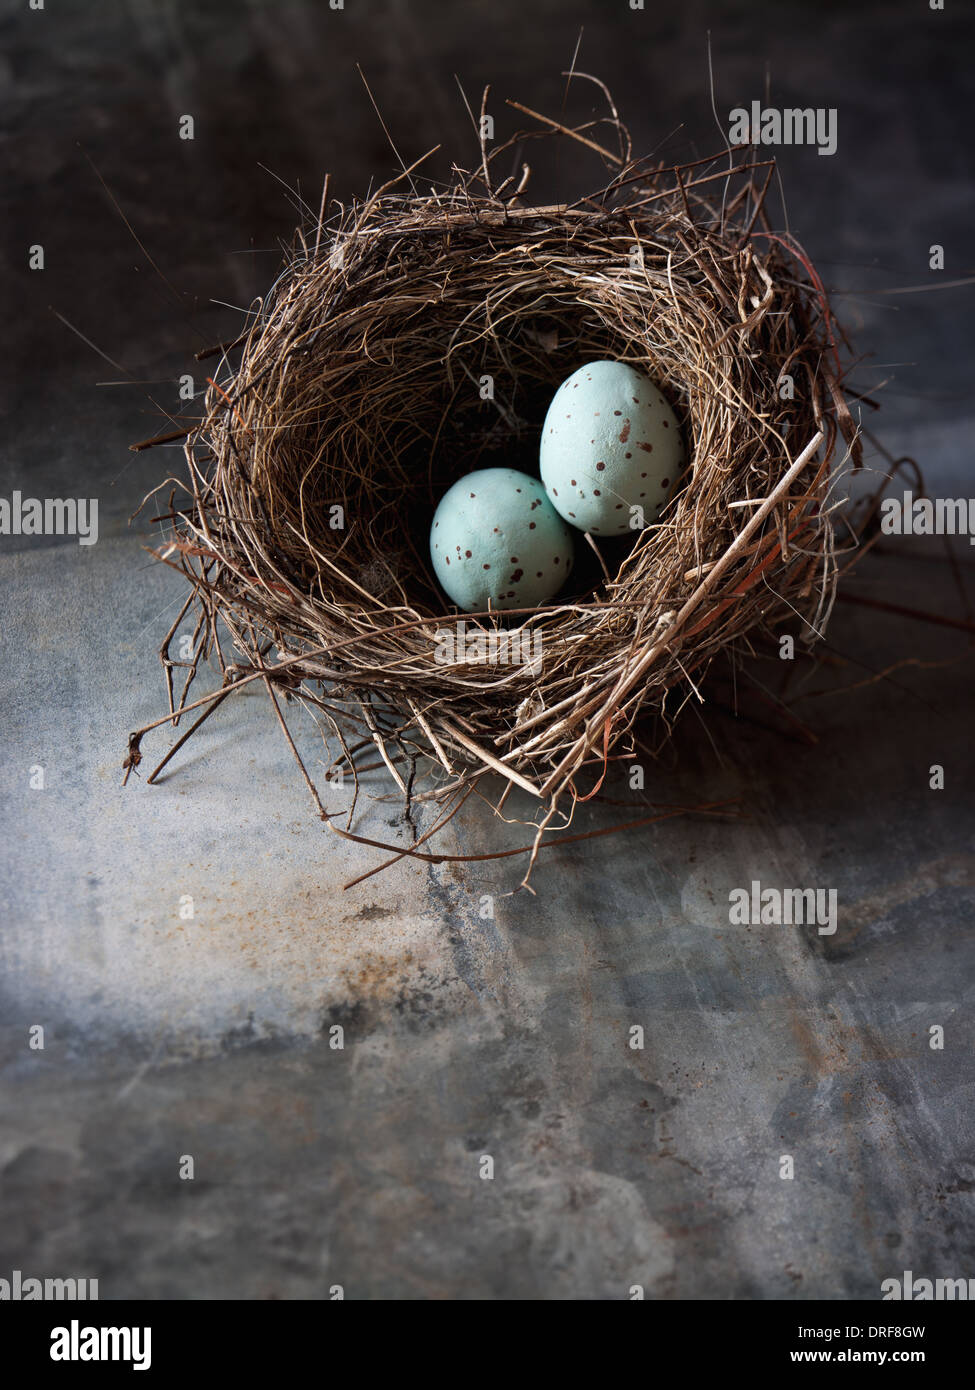 Maryland USA woven bird's nest Two small turquoise eggs - Stock Image